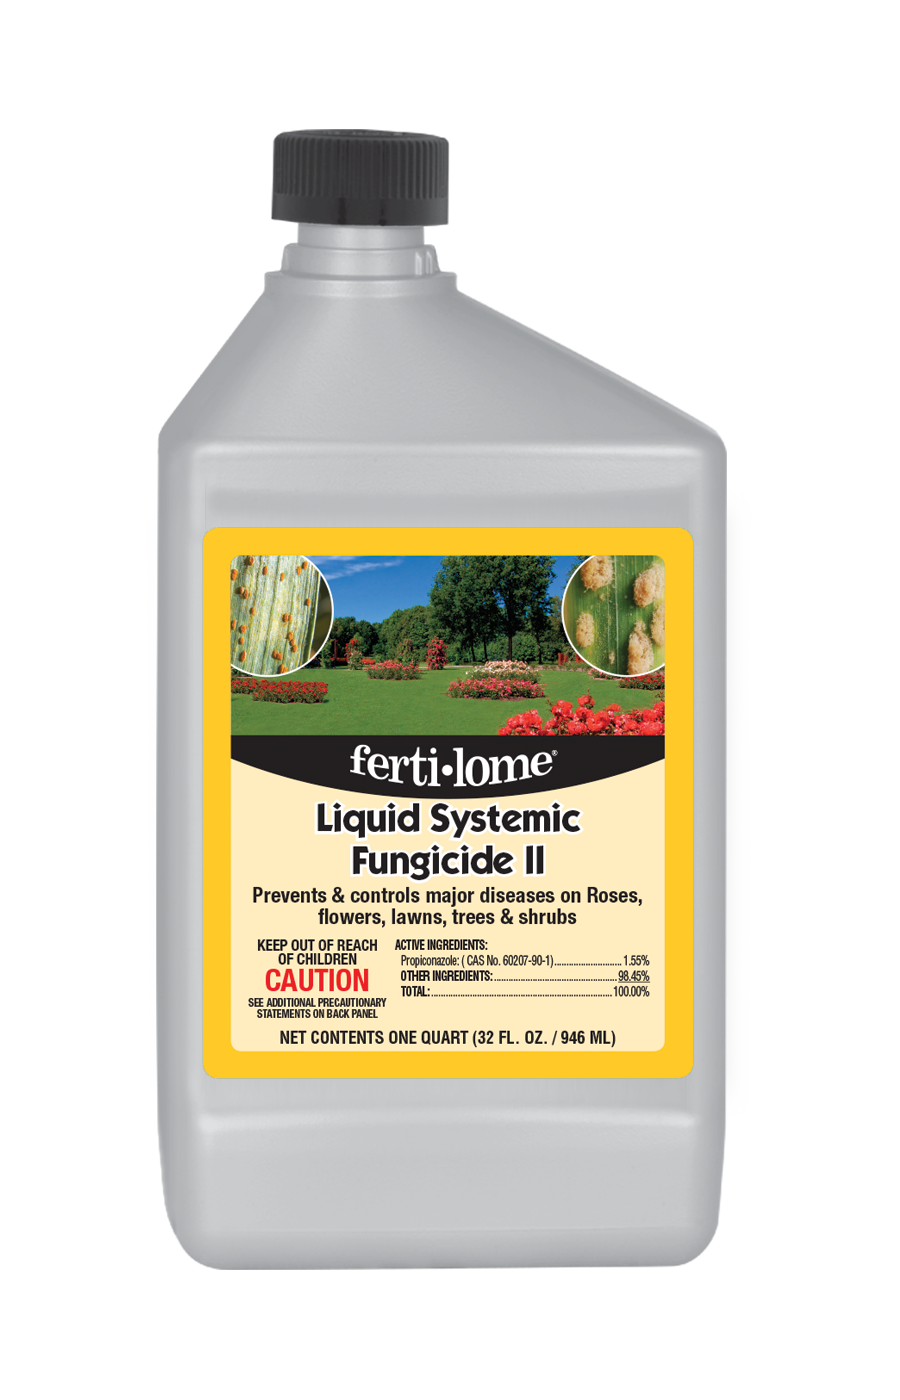 ferti-lome | Hi-Yield | Natural Guard | Local Solutions for Local ...